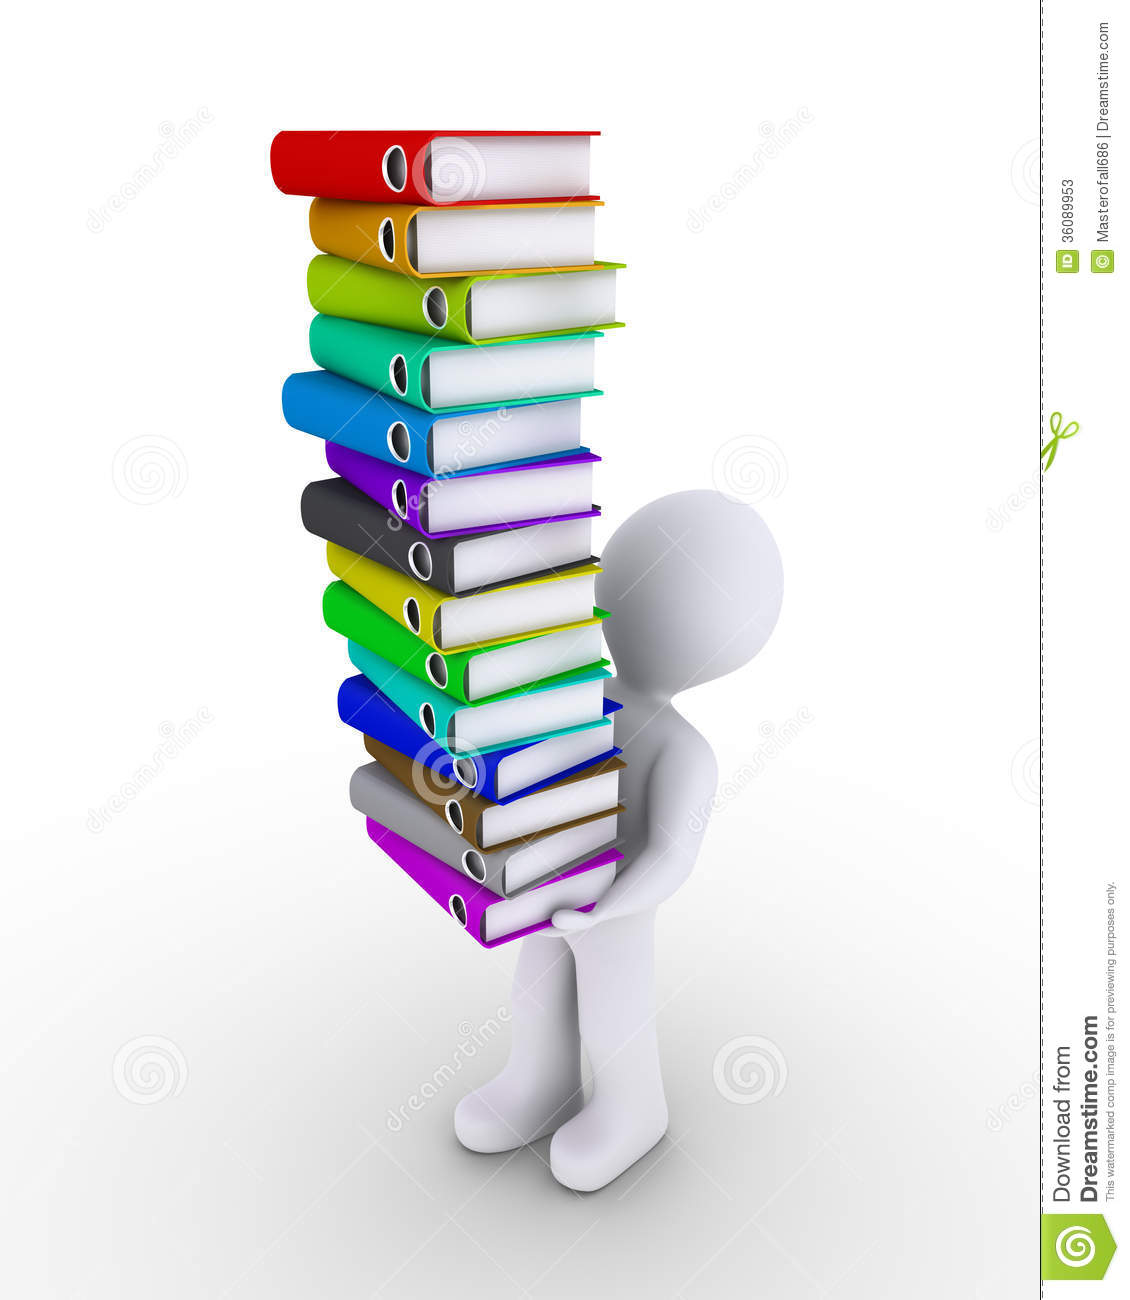 Person Is Carrying A Pile Of Folders Stock Photos Image  : person carrying pile folders d trying to balance 36089953 <strong>Briefcase  Clip Art</strong> from www.dreamstime.com size 1130 x 1300 jpeg 85kB